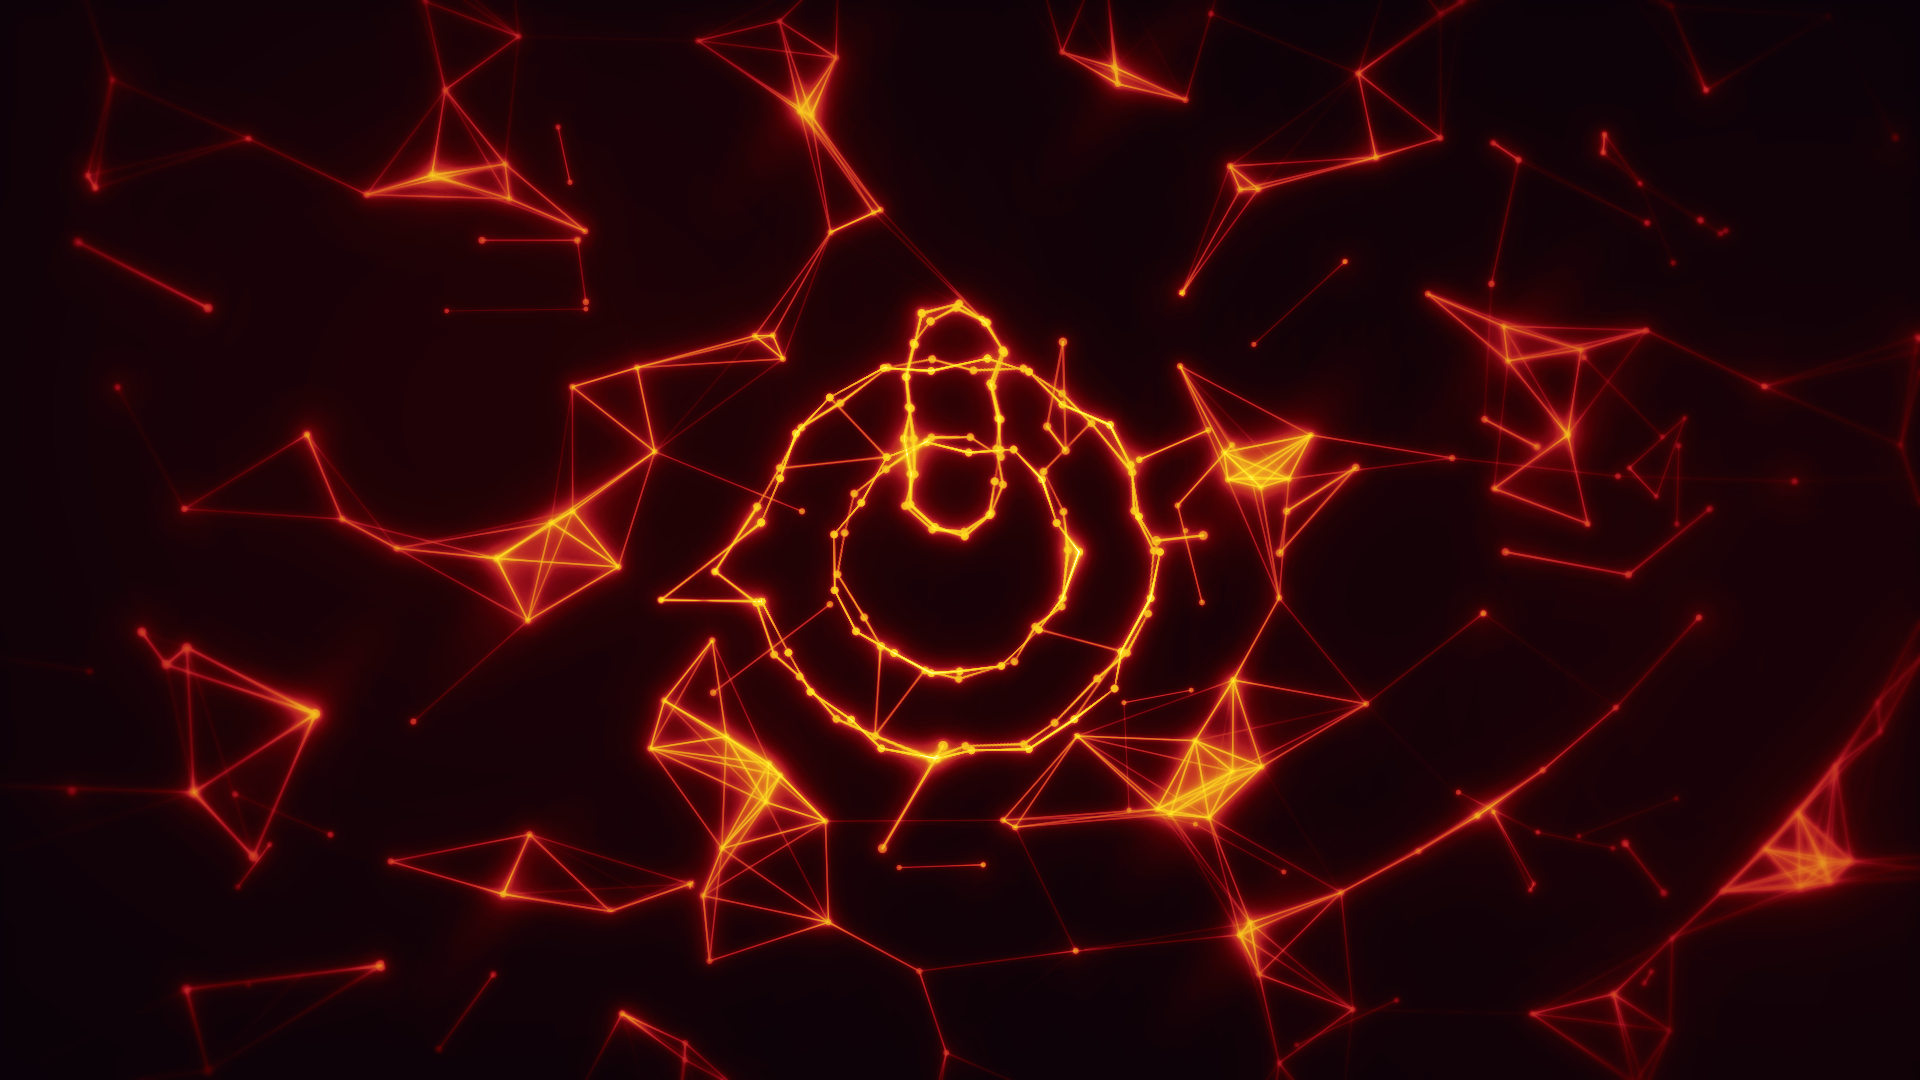 Wireframe Wallpaper Gallery